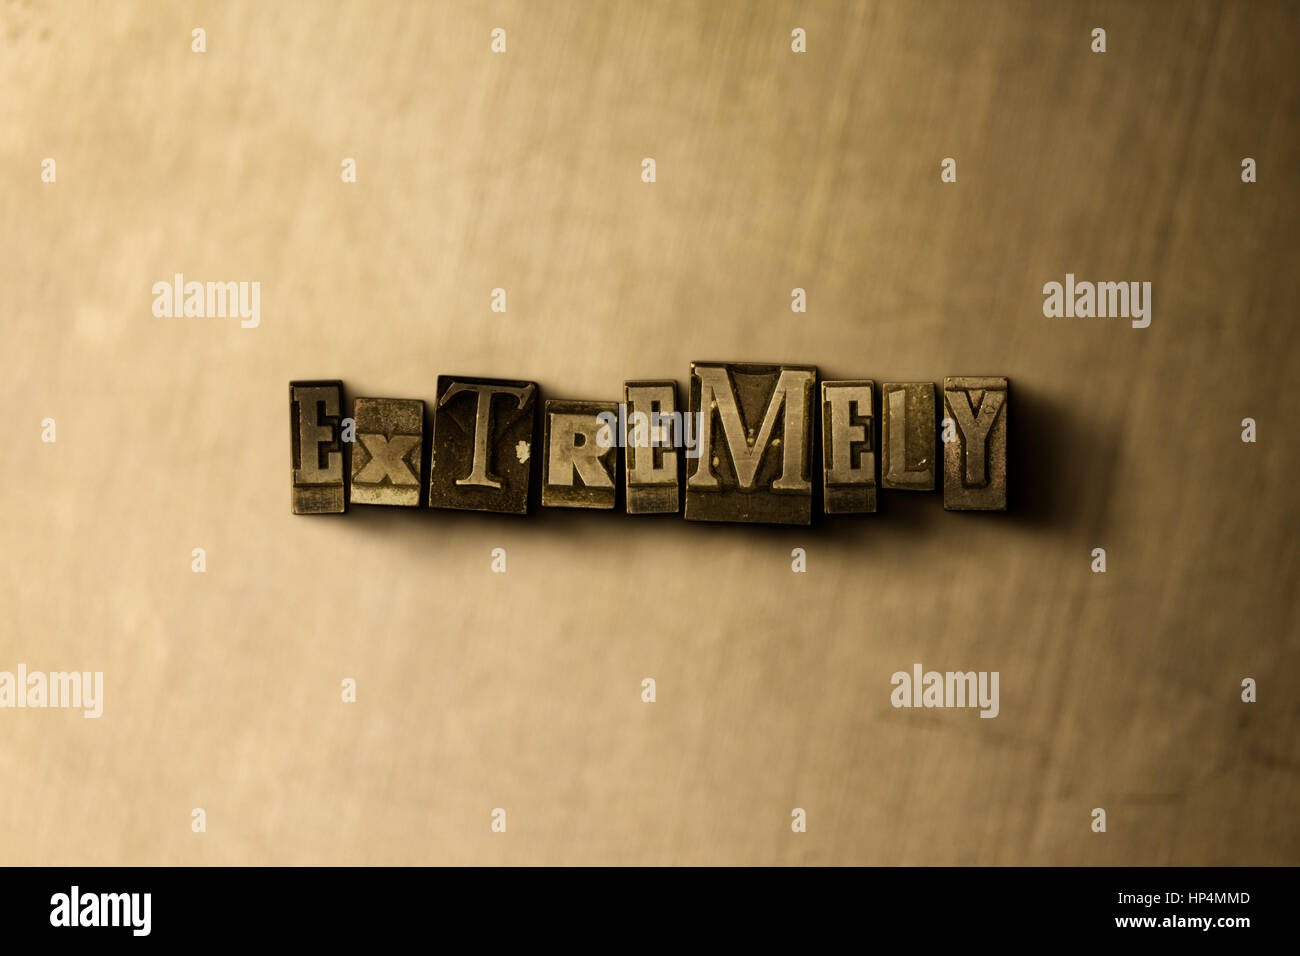 EXTREMELY - close-up of grungy vintage typeset word on metal backdrop. Royalty free stock illustration.  Can be - Stock Image